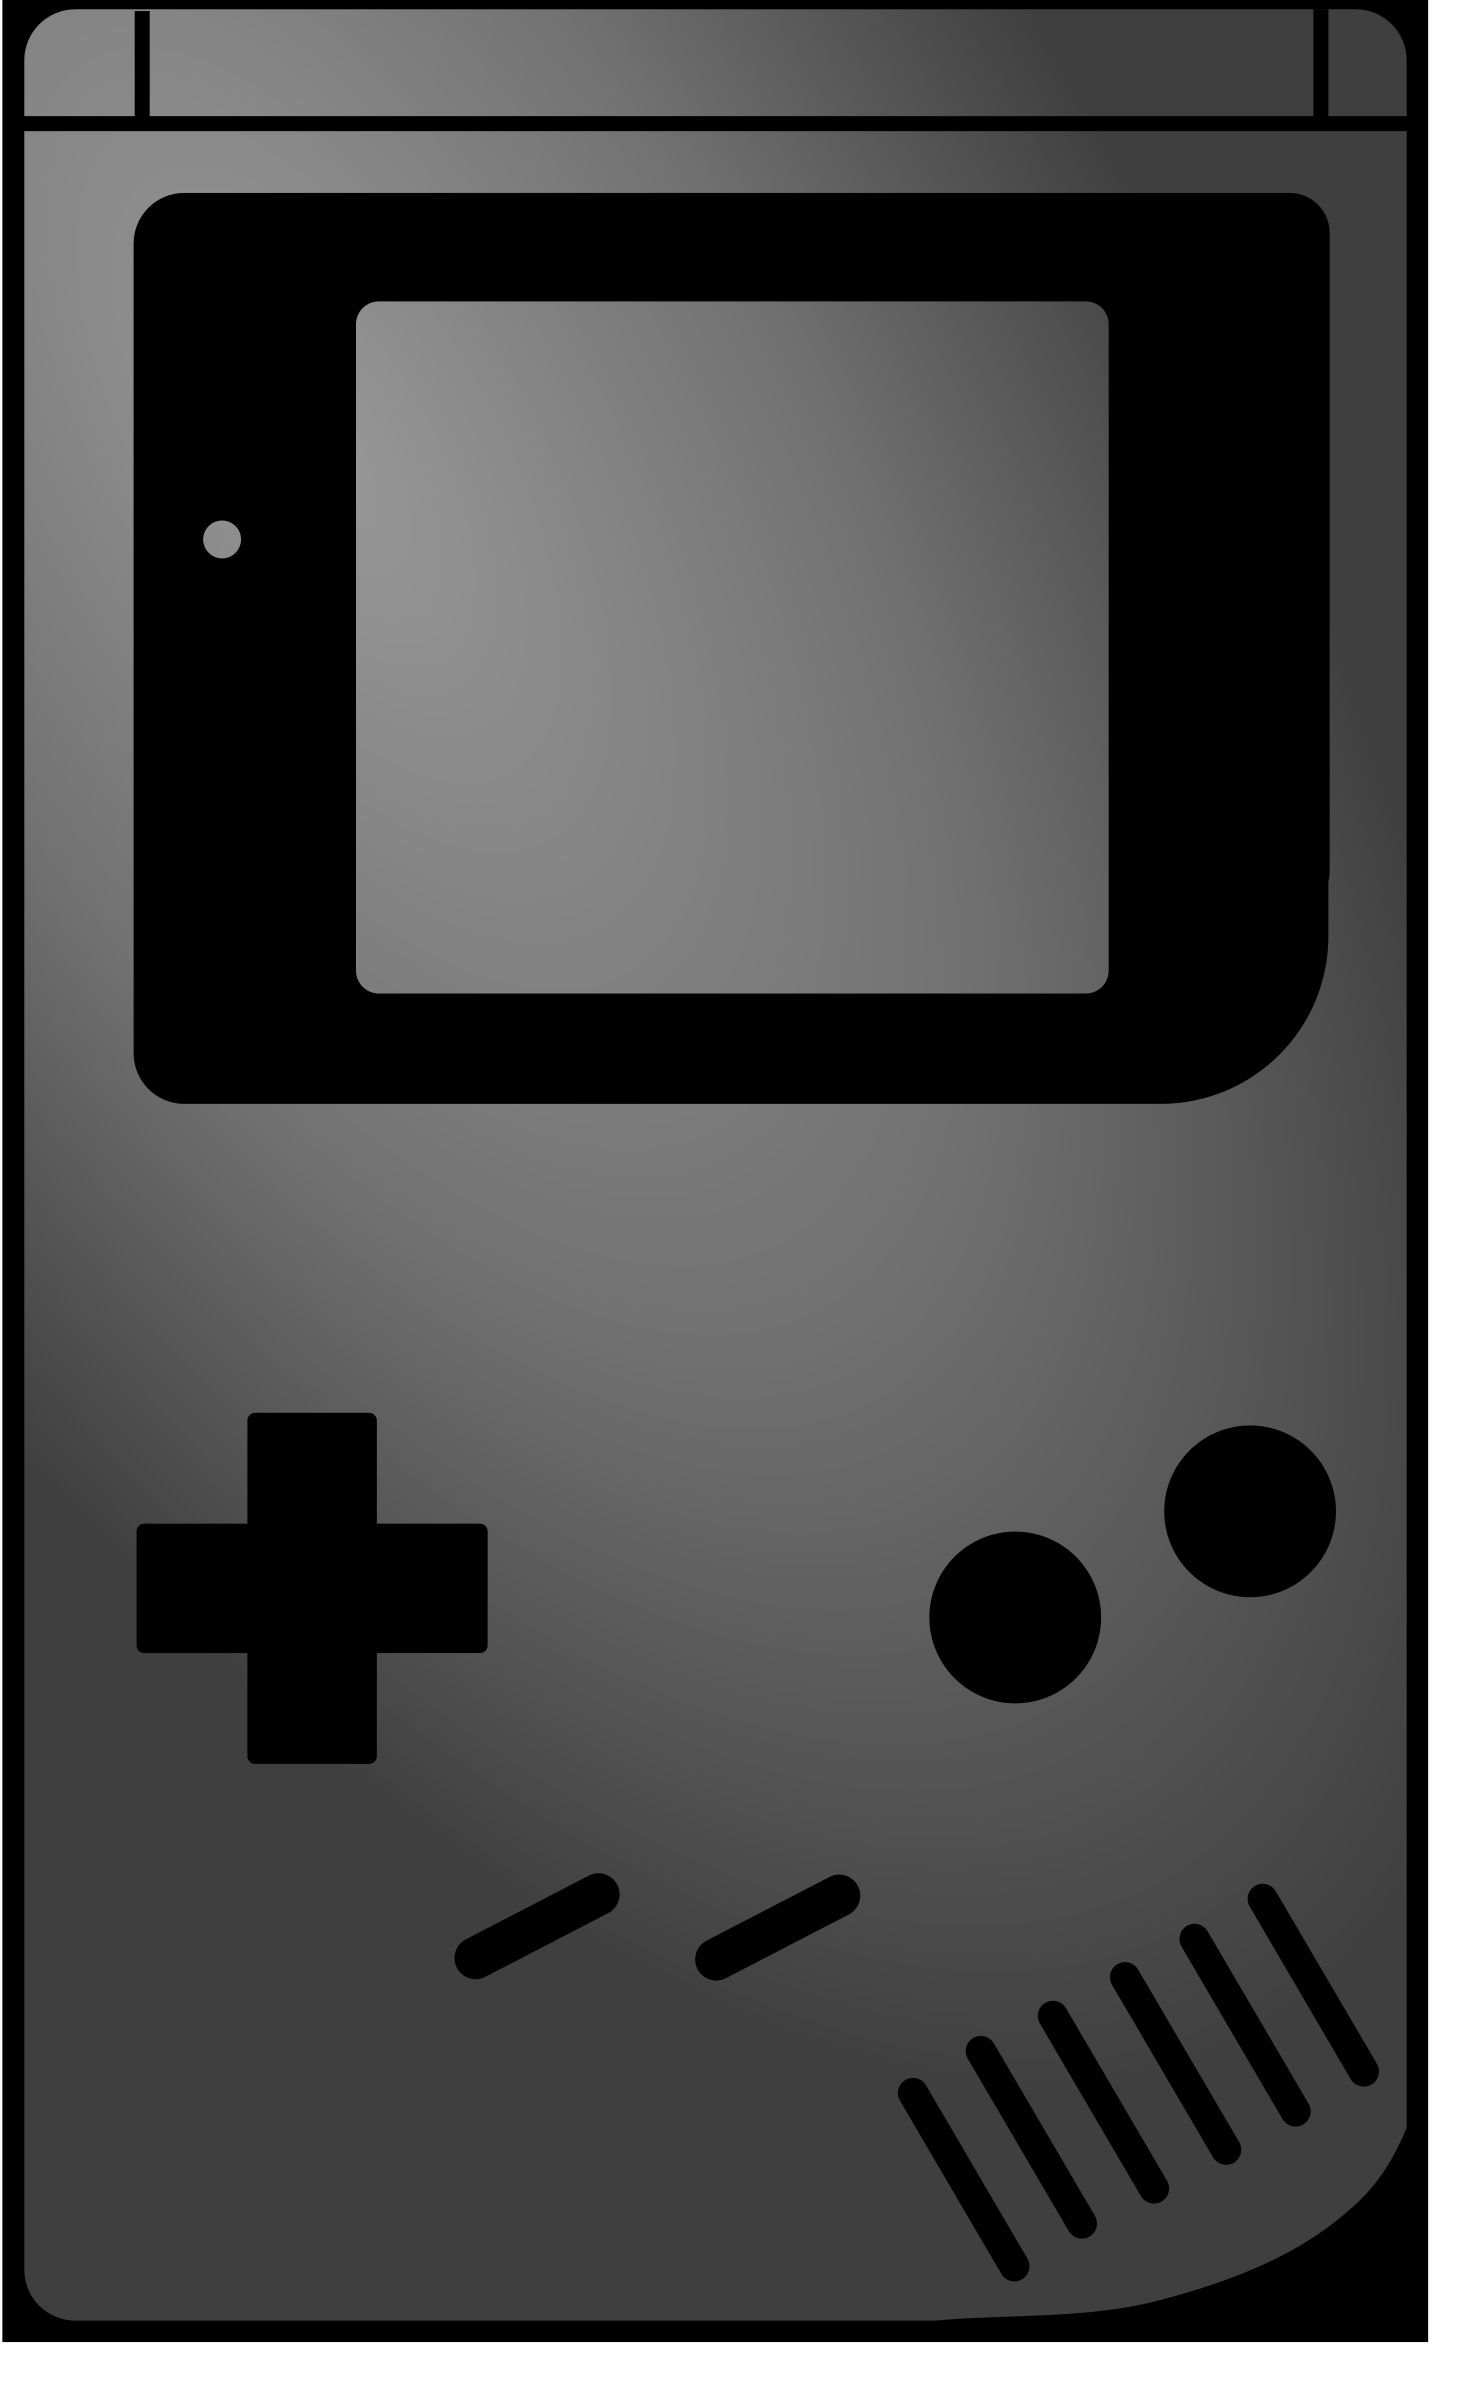 Icon Png Gameboy image #17234